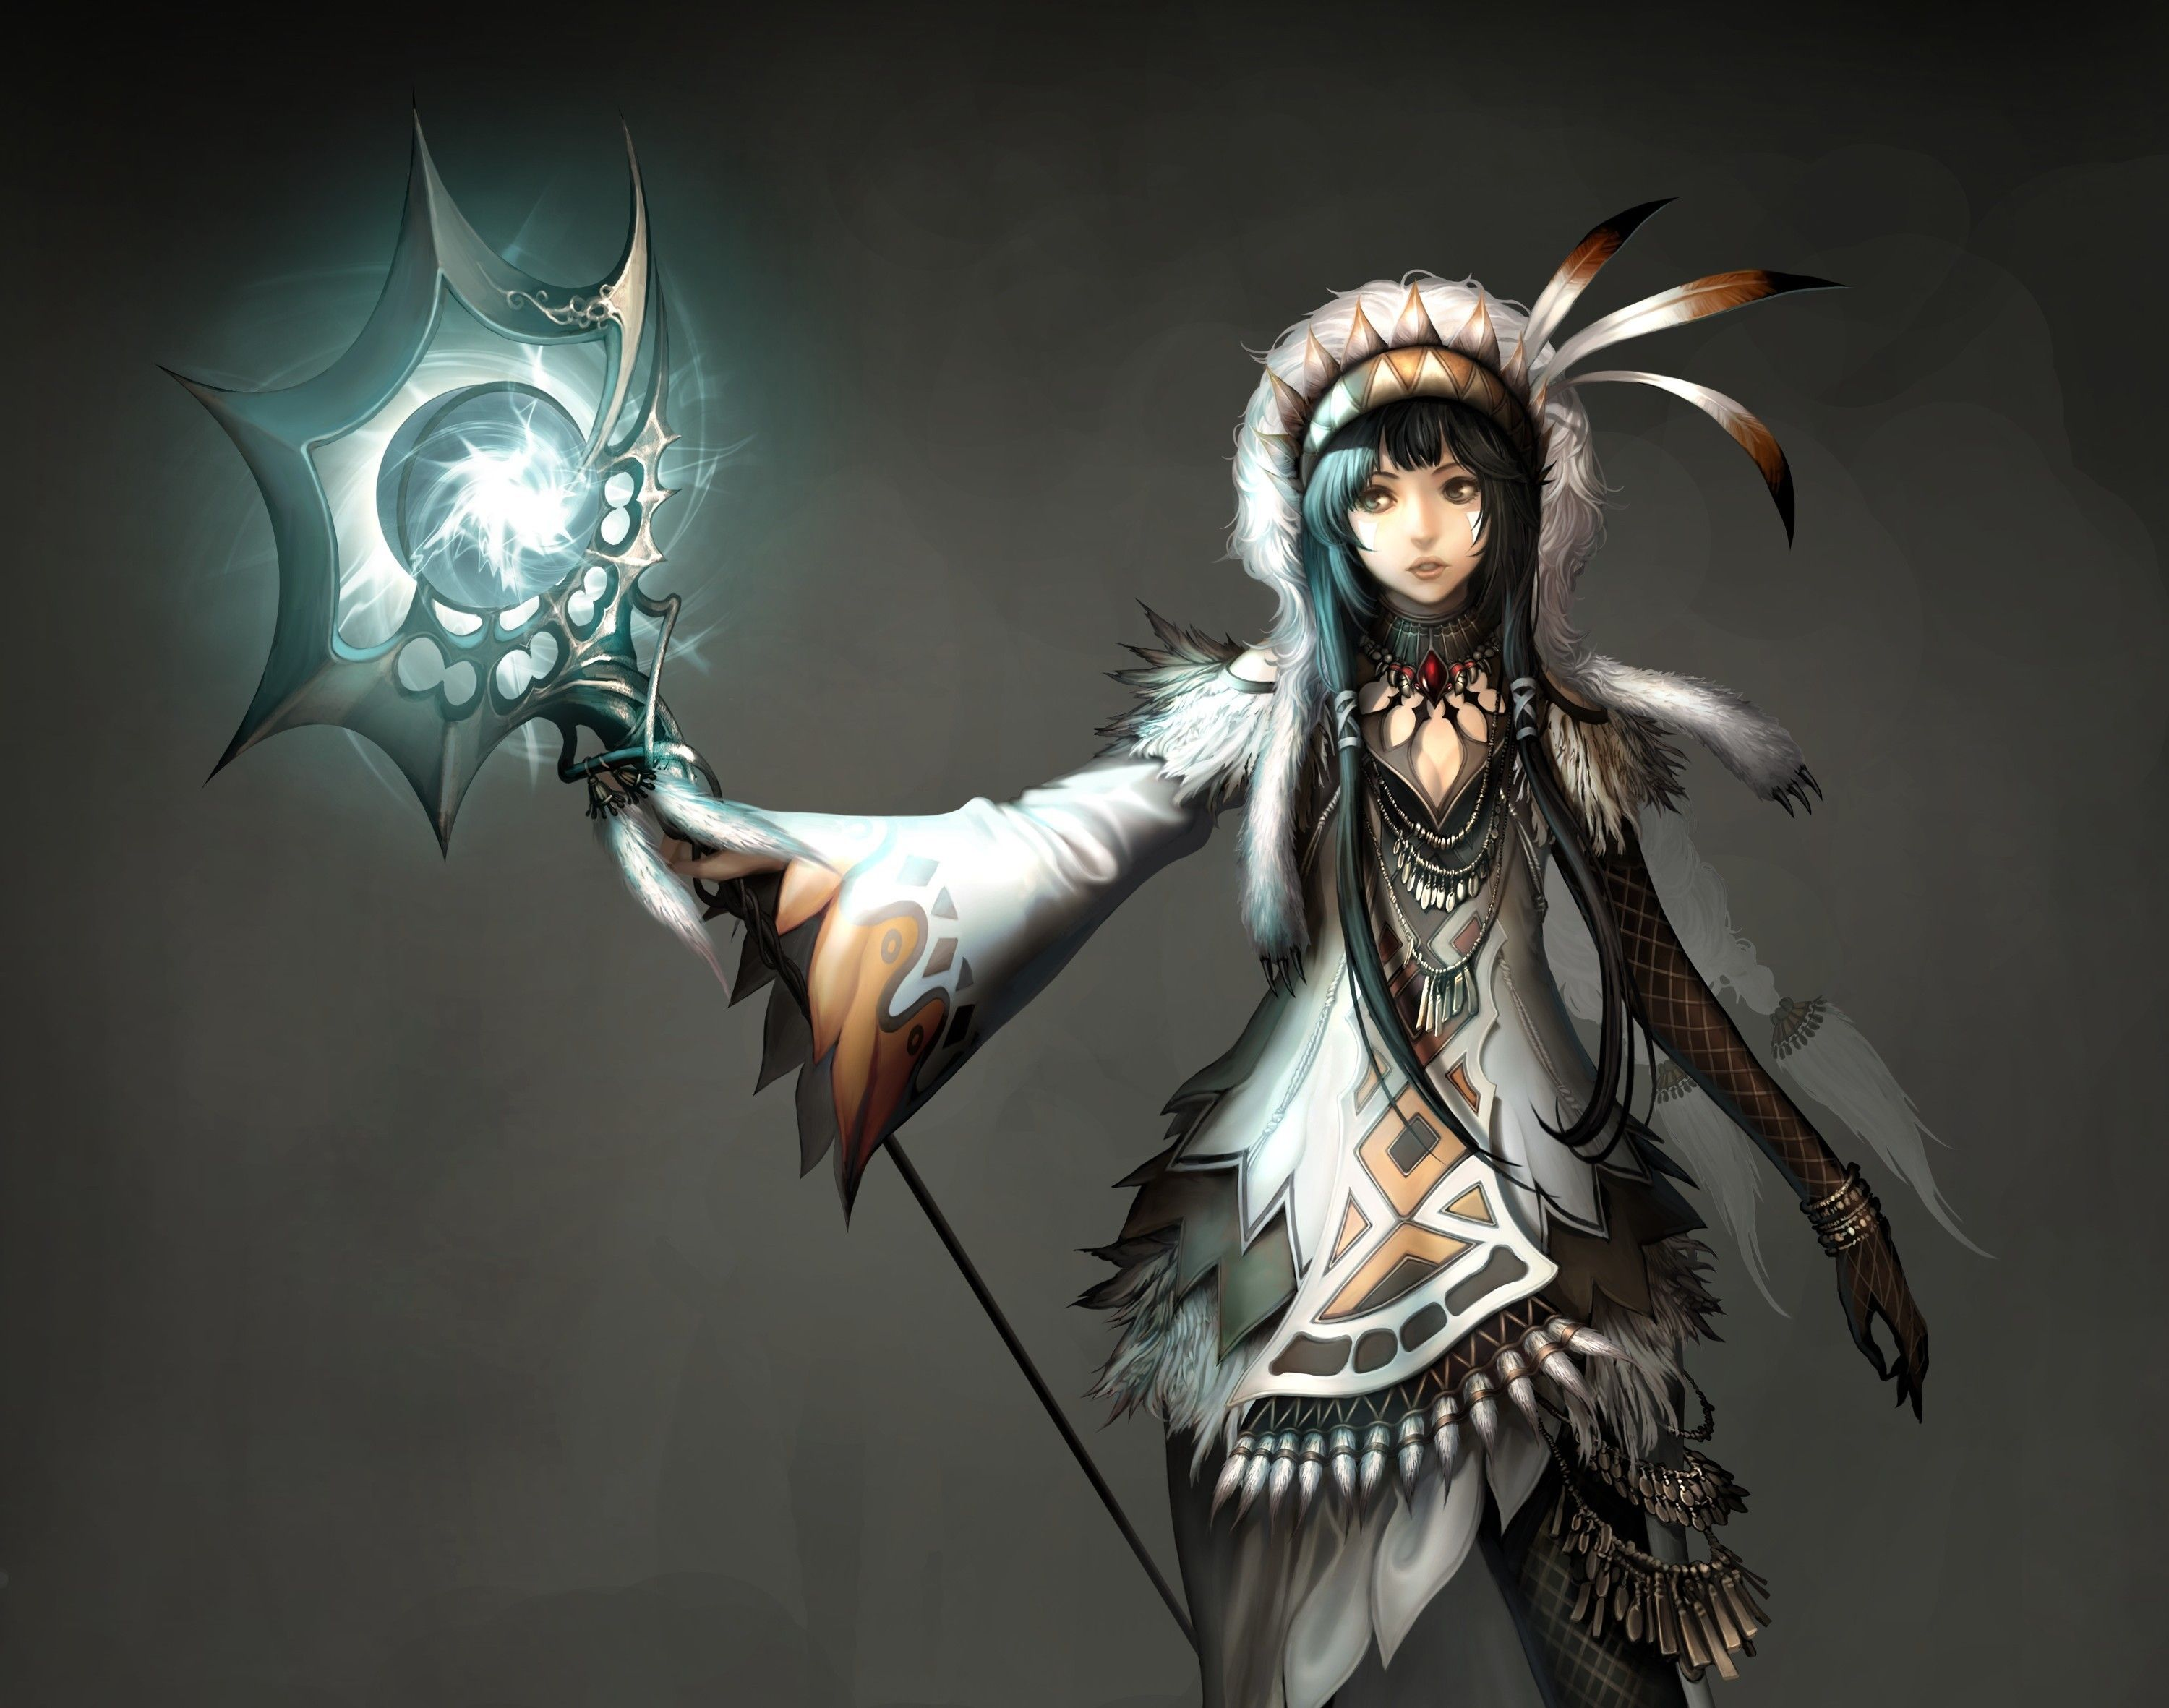 Anime Fire Mage Girl Wallpapers Hd Wallpapers 3000x2363 Px 606 87 Kb Anime Fantasy Warrior Fantasy Characters